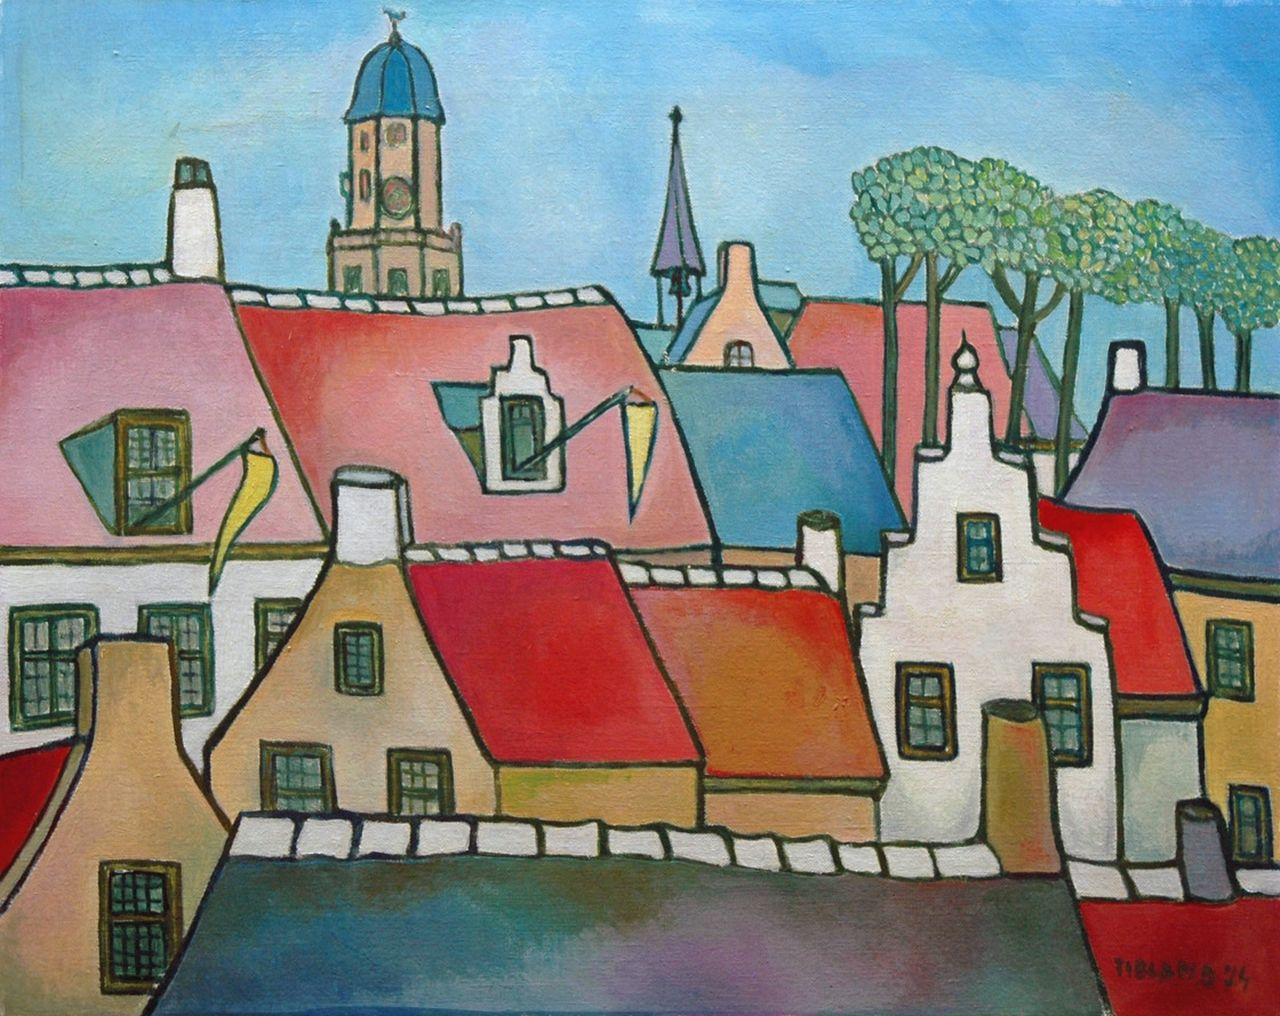 Toon Tieland | City view, oil on canvas, 40.0 x 50.0 cm, signed l.r. and dated '74